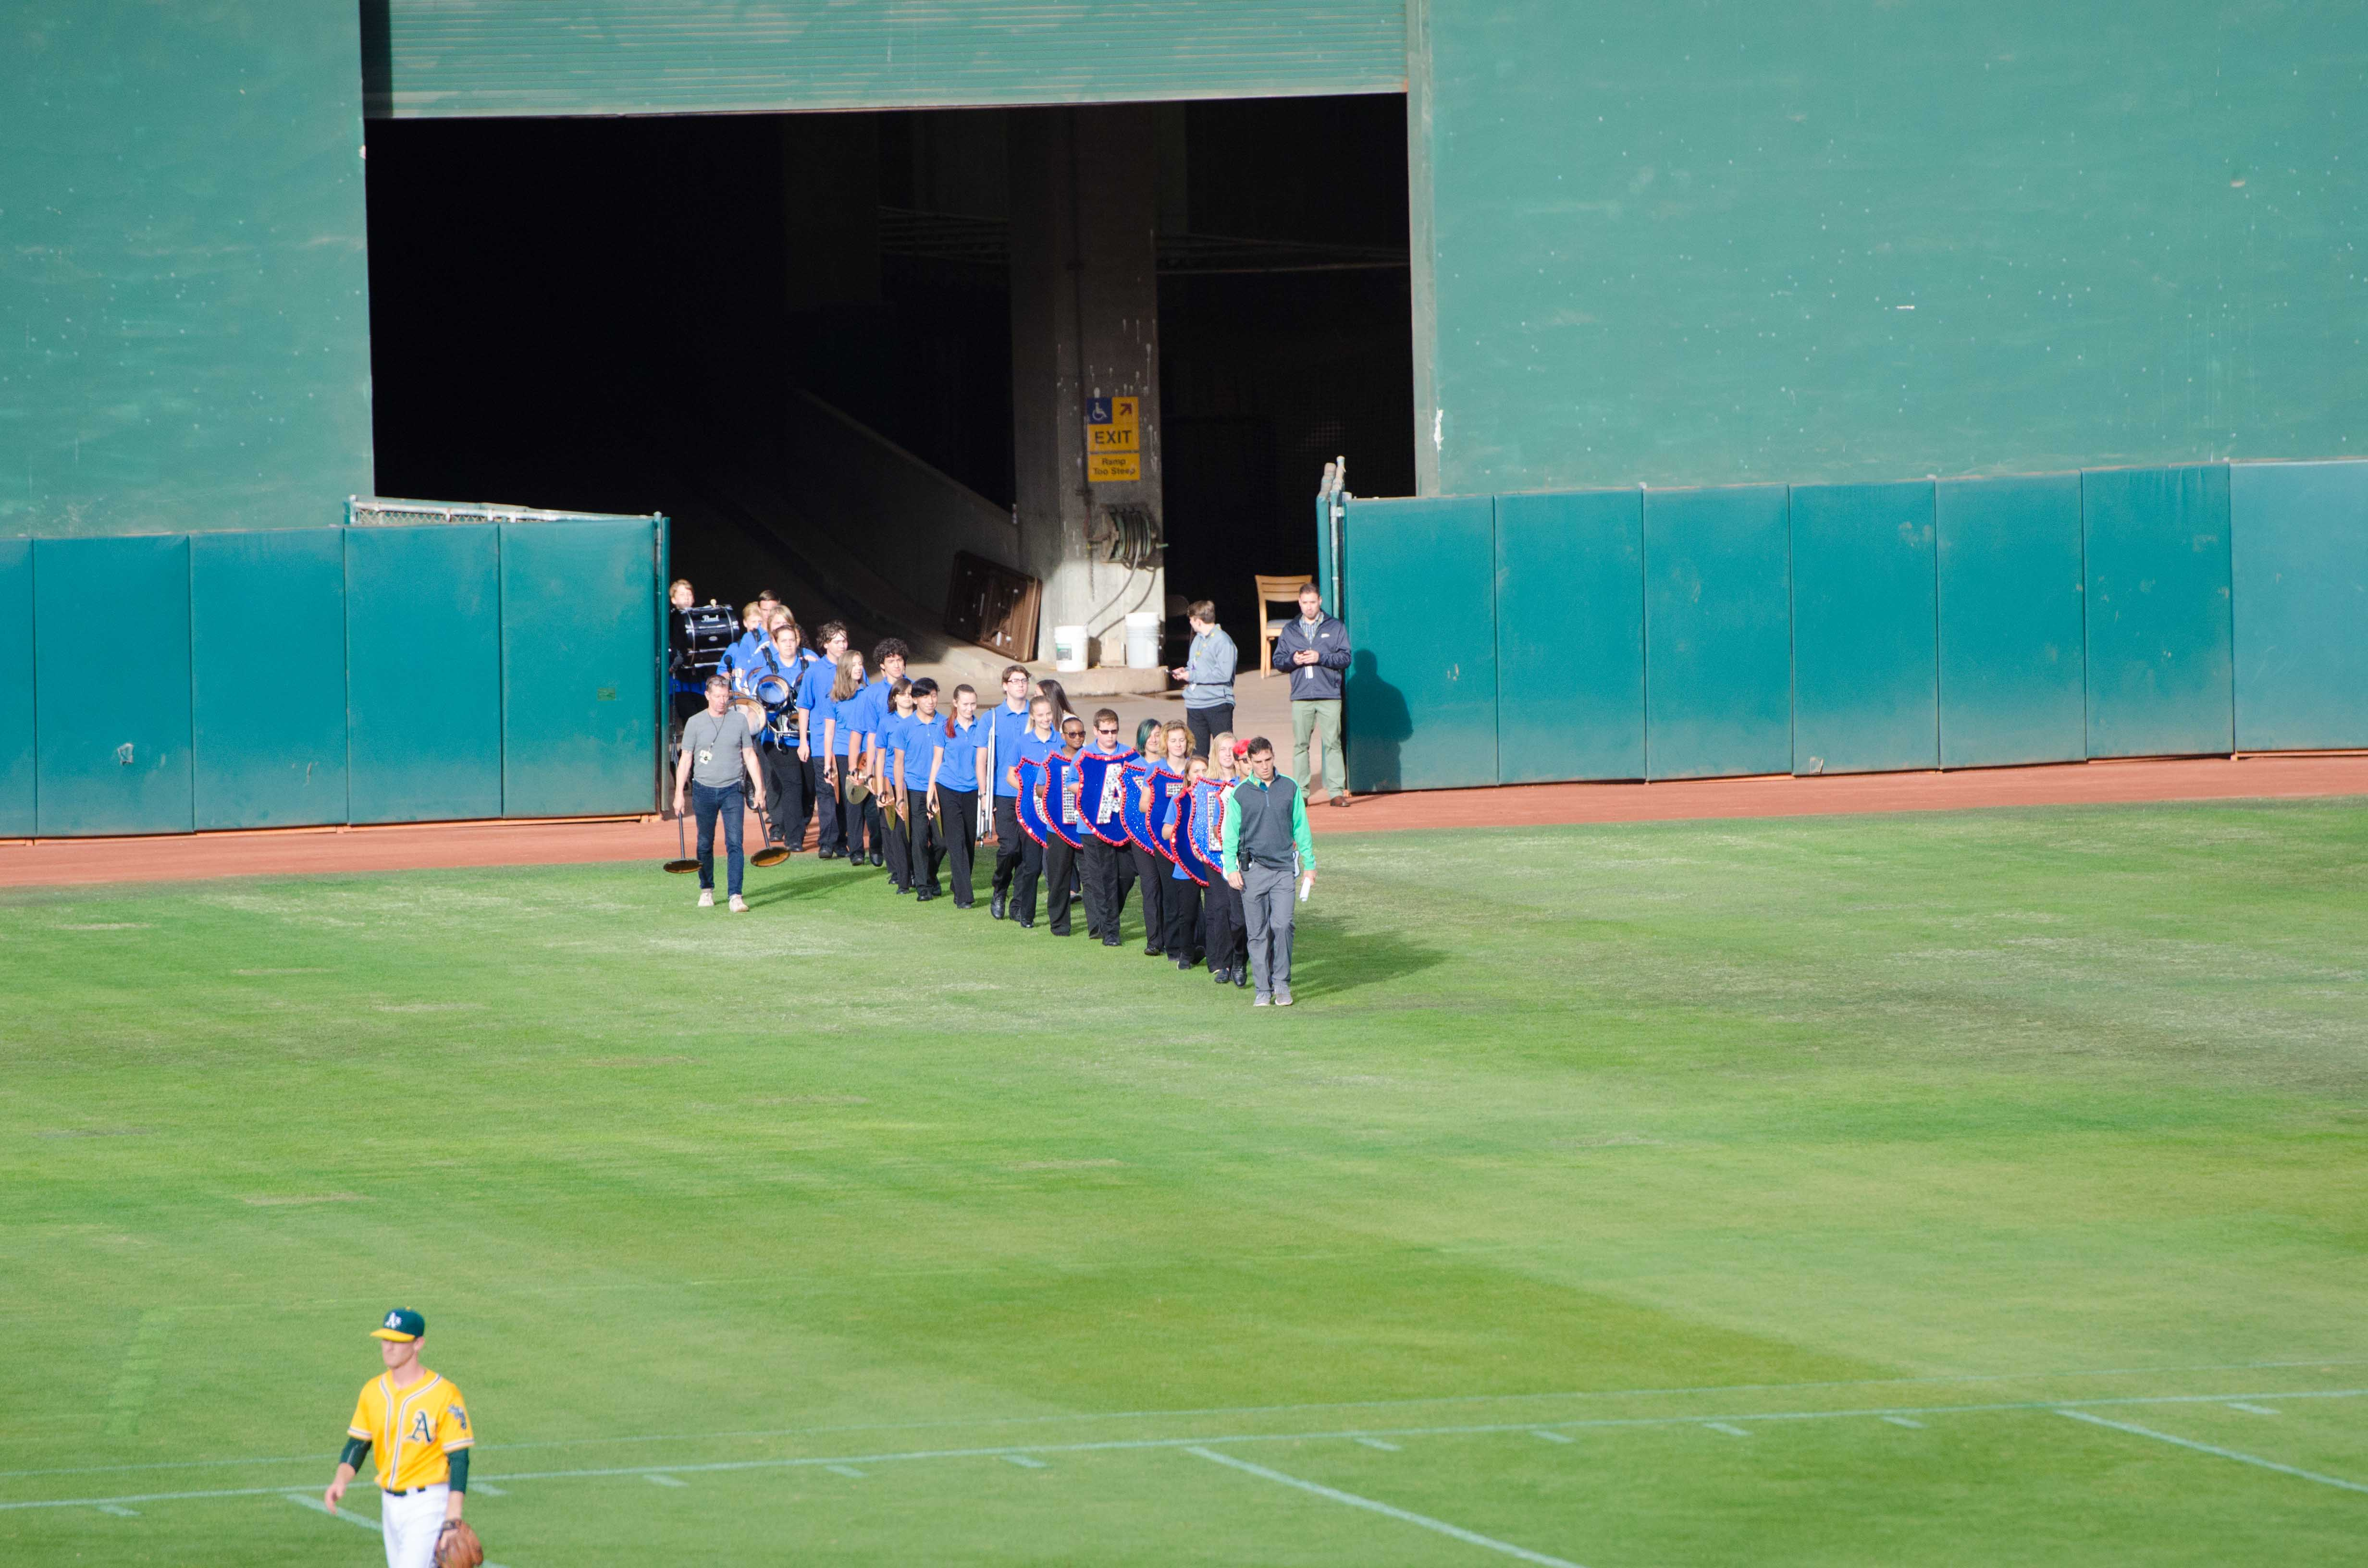 A's Game 9-3-16-11